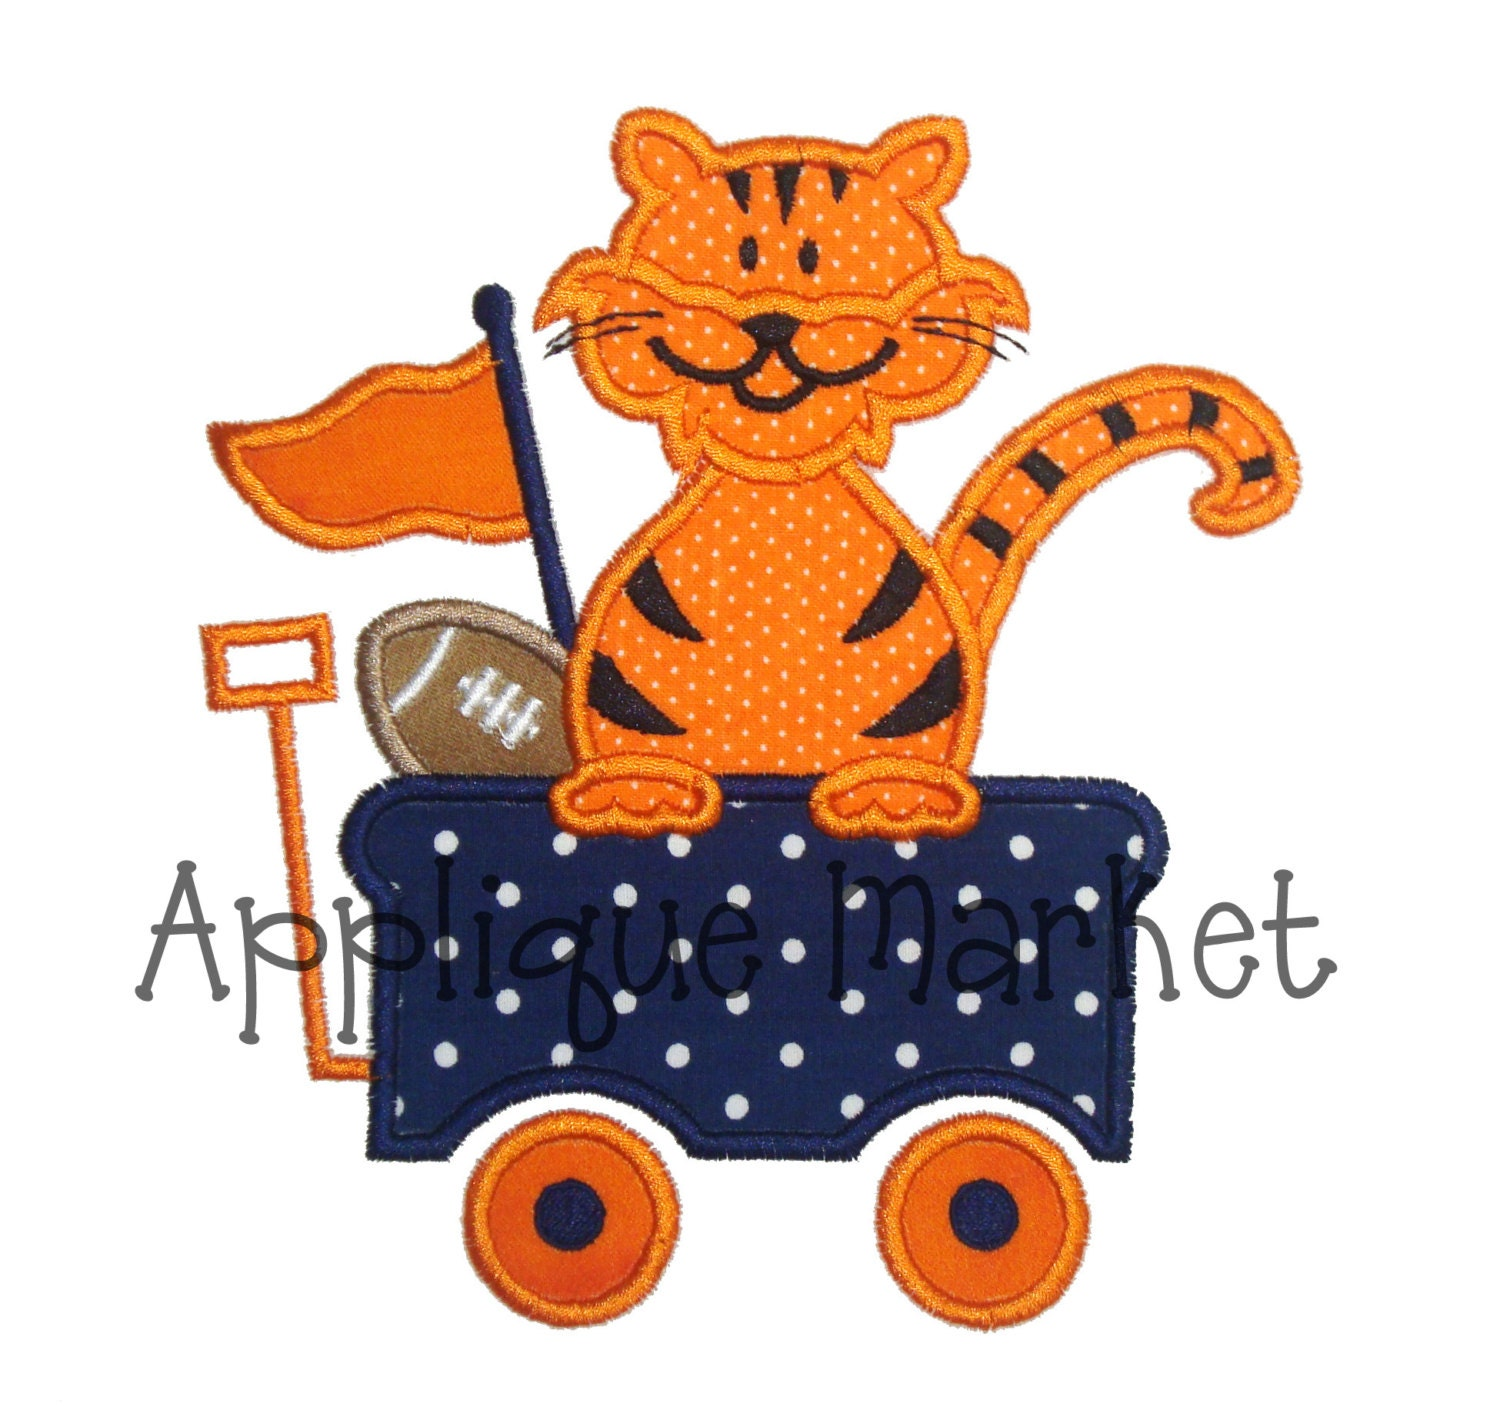 Auburn Machine Embroidery Designs